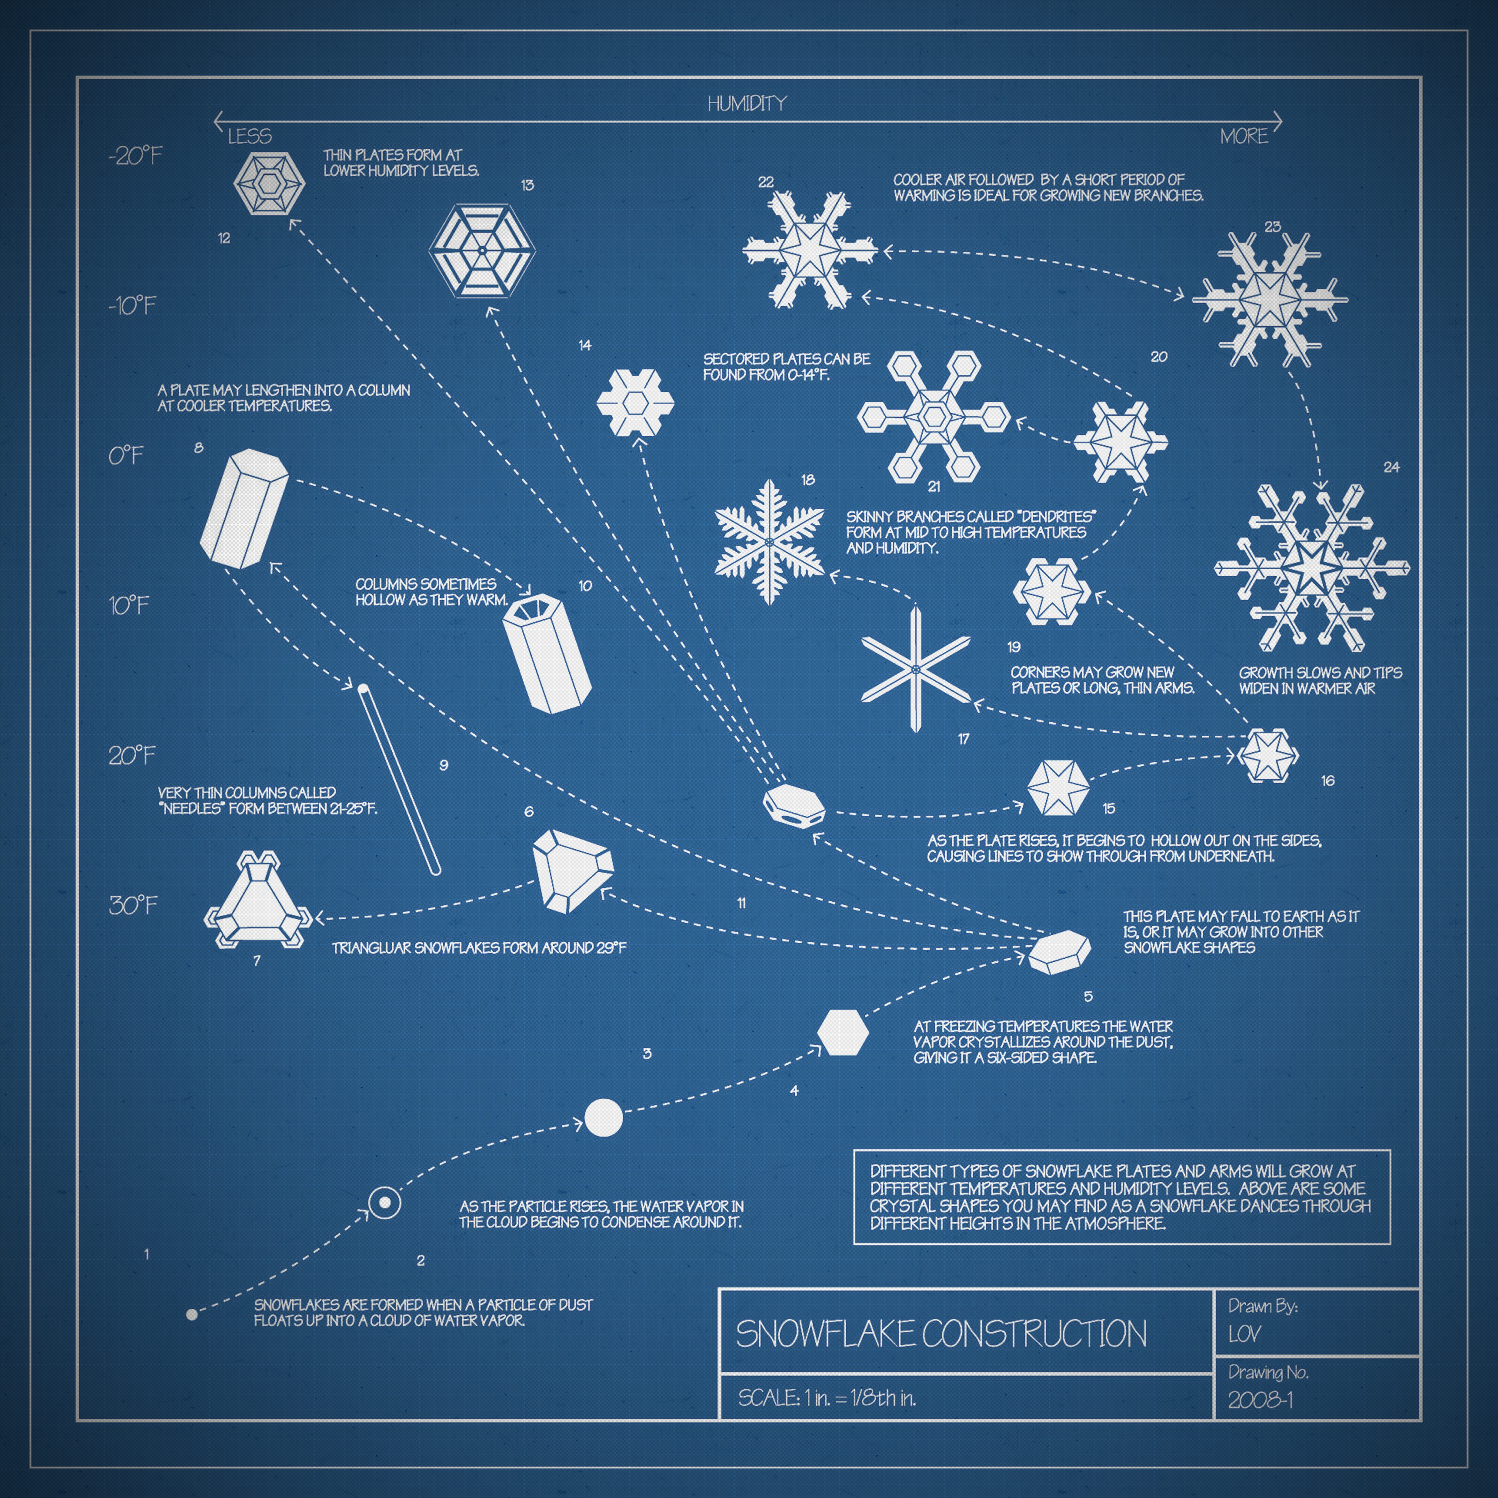 The construction of a snowflake. (Infographic by LOV)